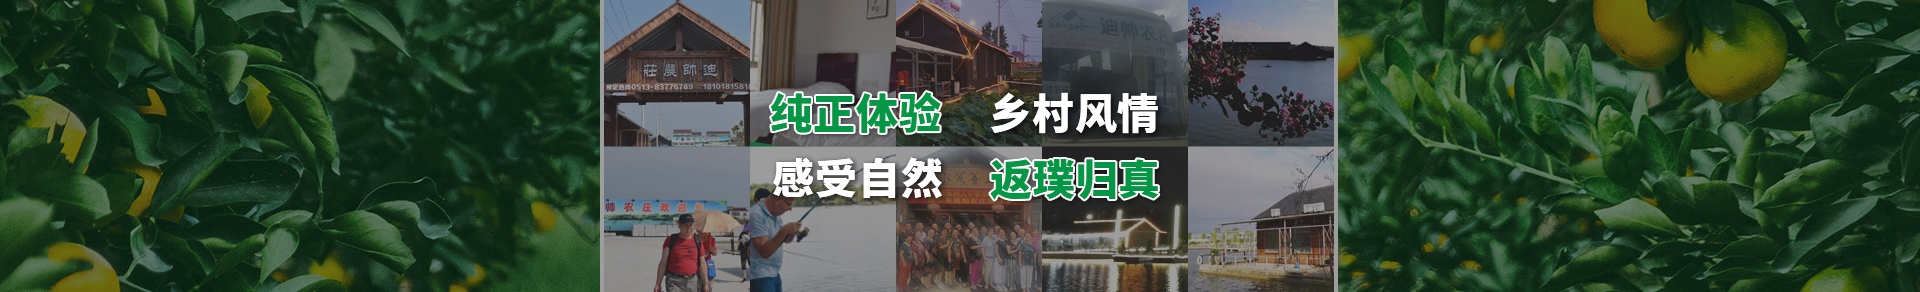 http://www.ntdsnz.cn/data/upload/201910/20191022151531_911.jpg